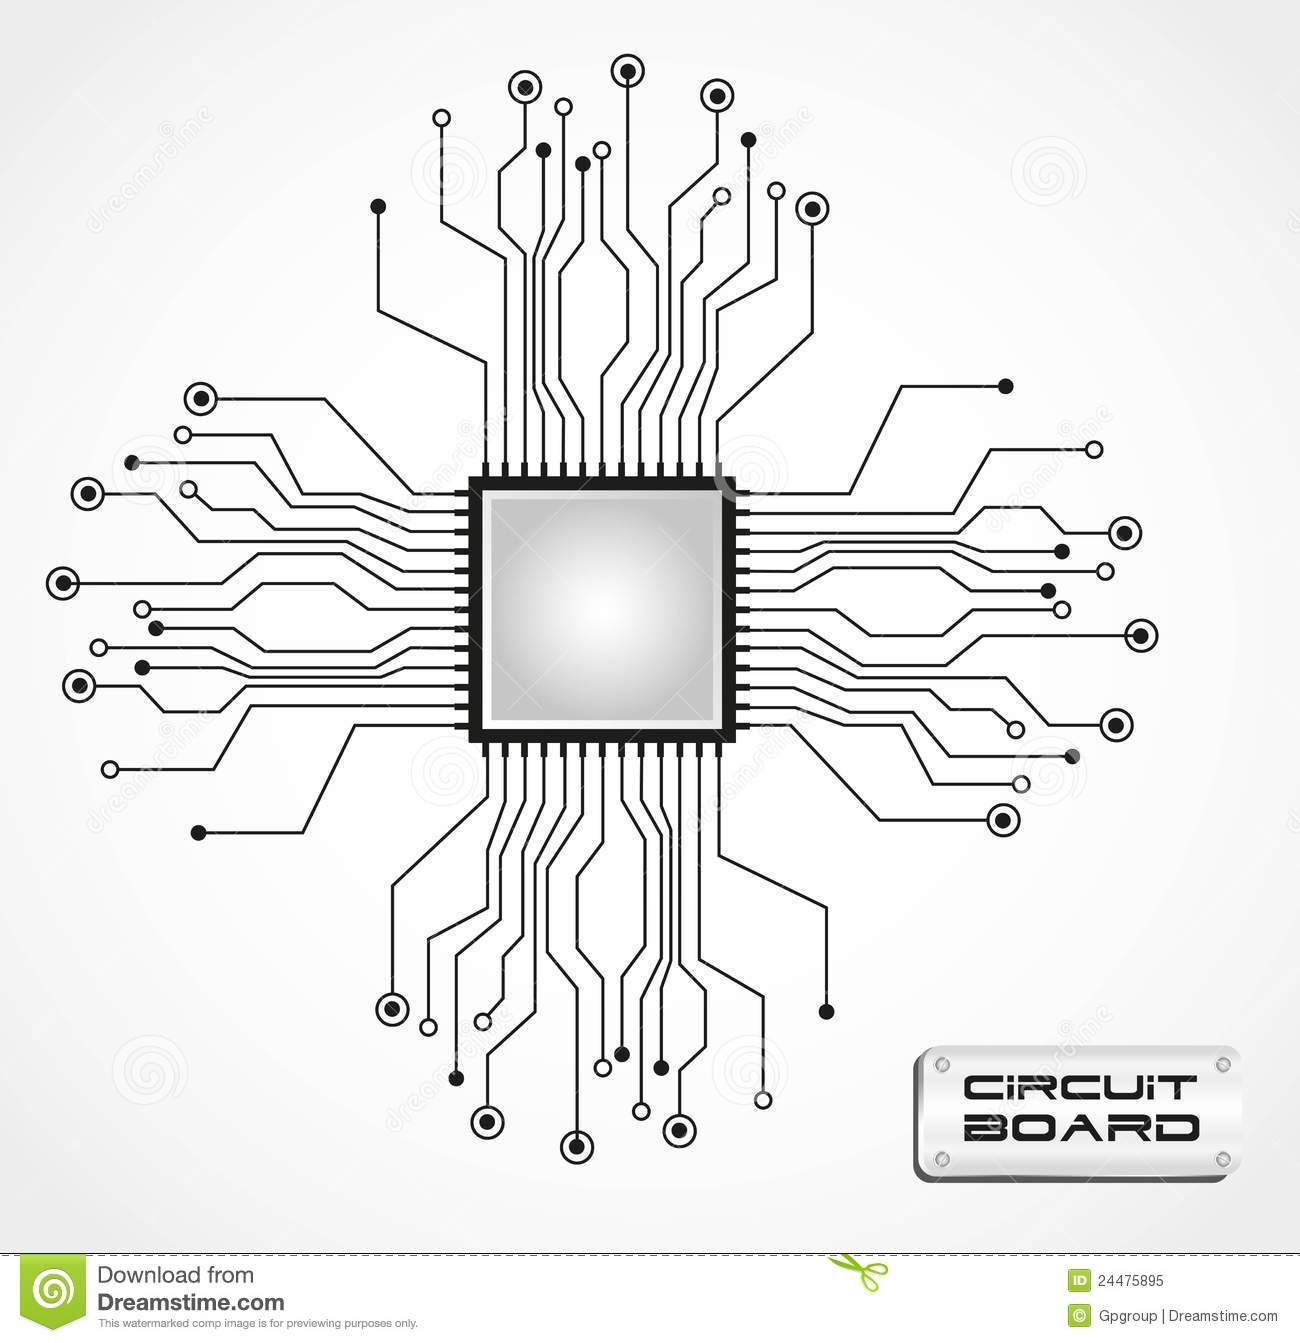 hight resolution of circuit board clipart circuit board clipart